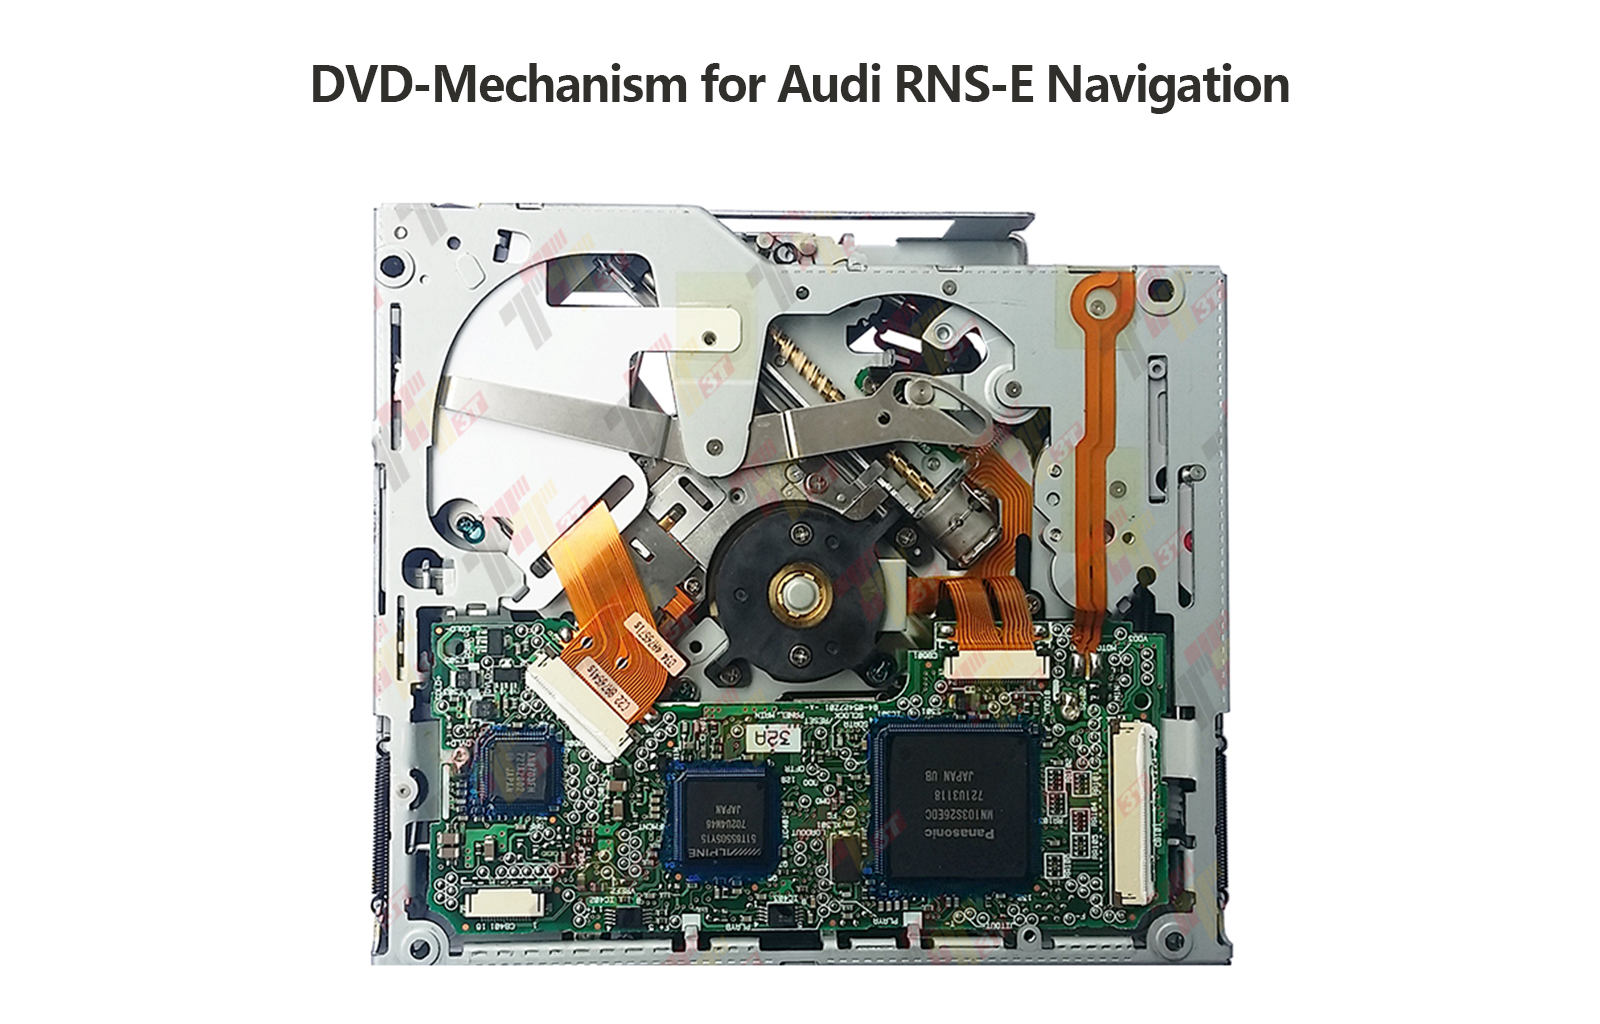 CD DVD Loader Assembly Mechanism For AUDI RNSE Navigation Plus - Audi rns e